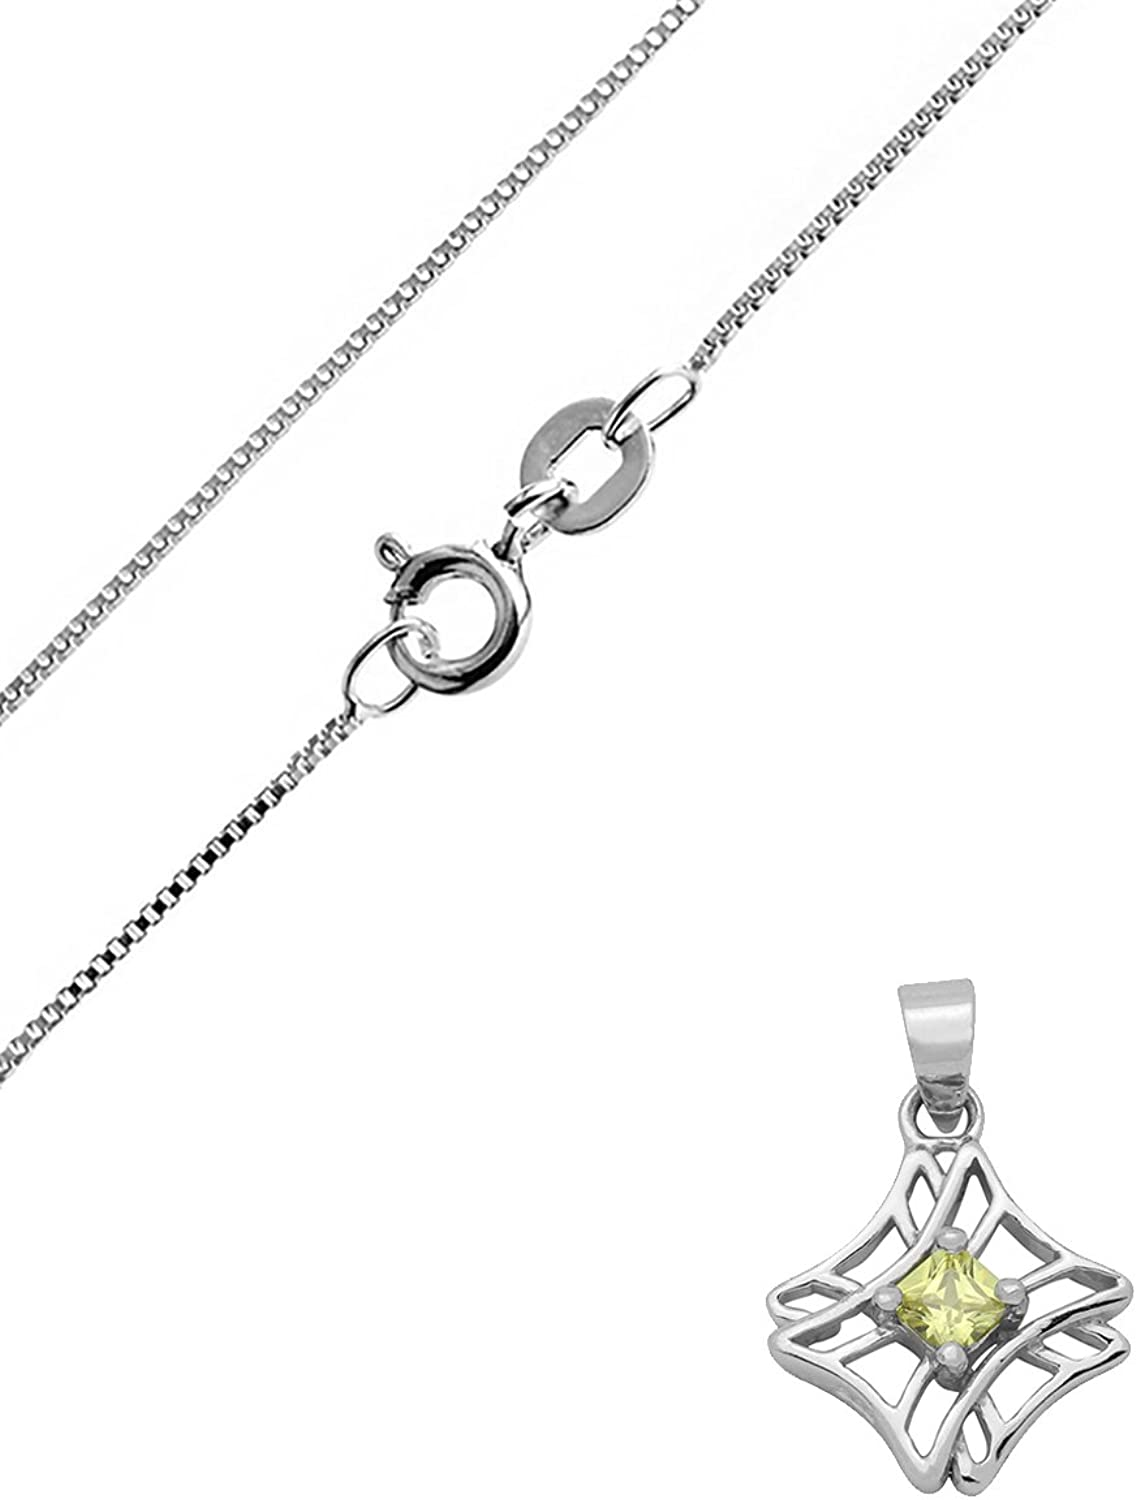 JewelryVolt 925 Sterling Silver CZ Pendant Violin Musical Instrument with Clear CZ Accent